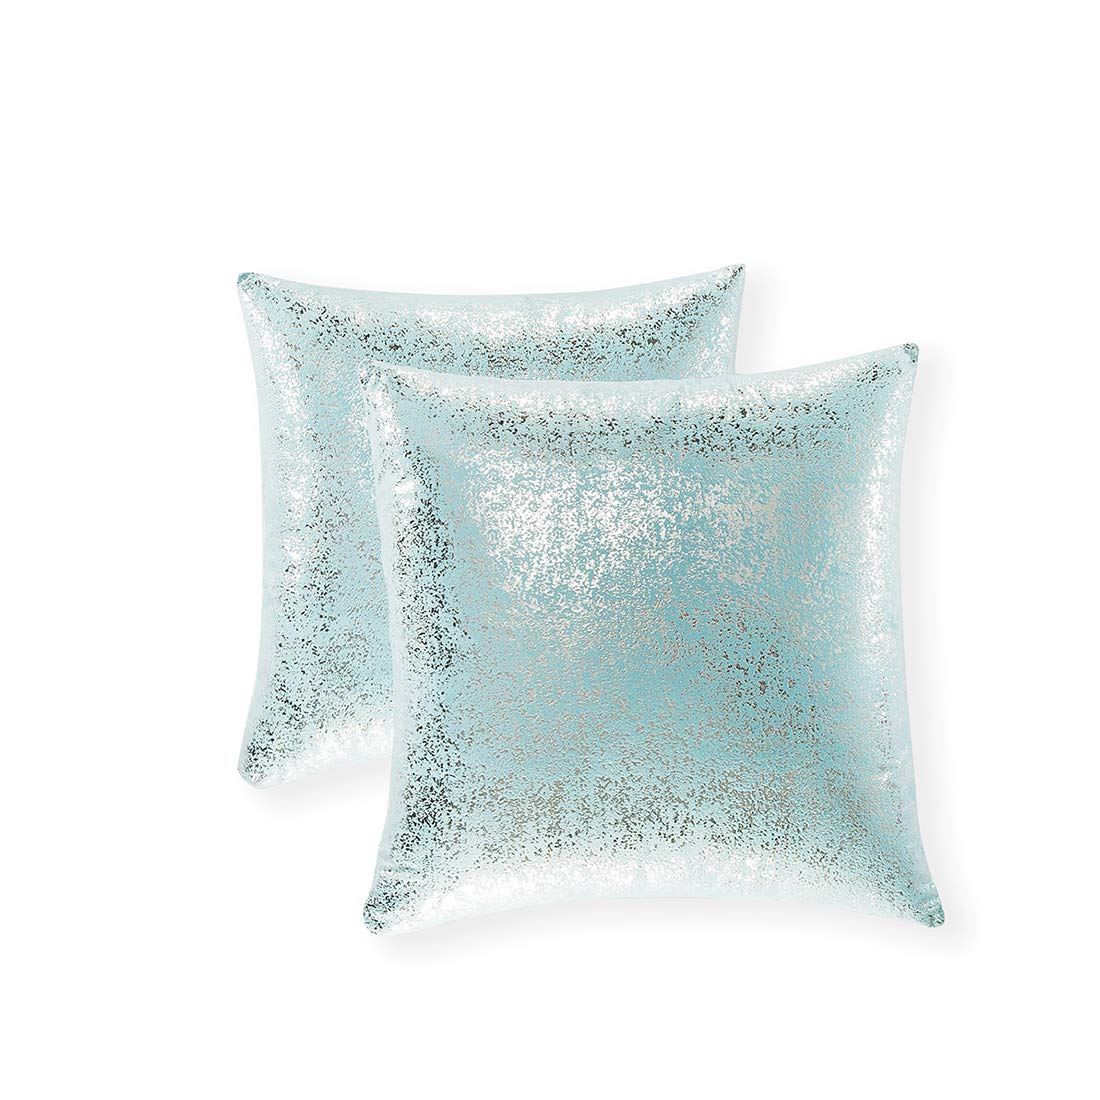 Xinrjojo Pack of 2, Shiny Cushion, Decorative Pillow Covers, Soft Square Throw Pillow Covers, Solid Color Cushion Covers, Pillow Cases for Sofa Bedroom Car 20 x 20 Inch 50 x 50 cm (Silver- Lake Blue)